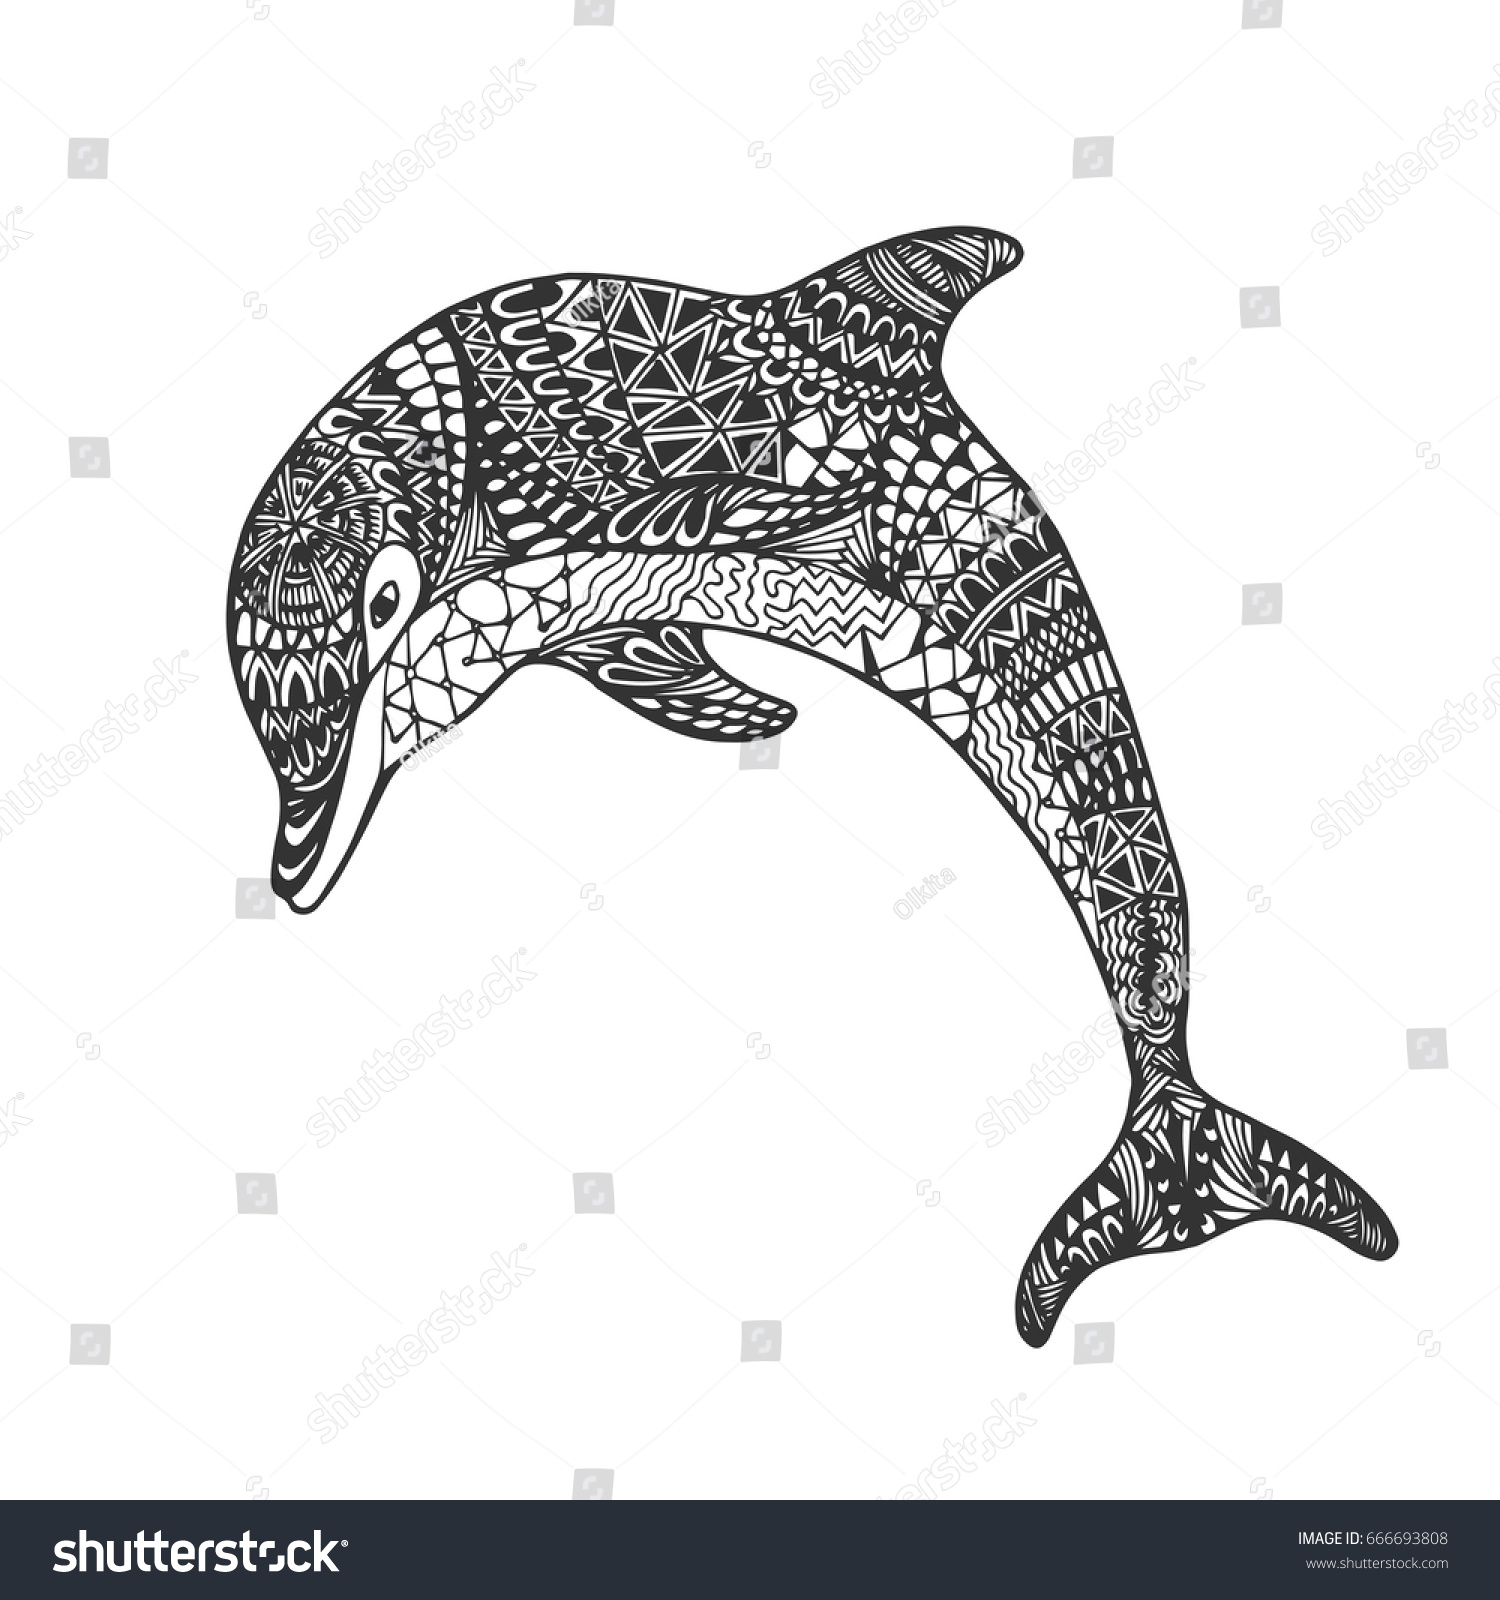 Abstract Dolphin Coloring Pages : Isolated hand drawn black outline monochrome stock vector